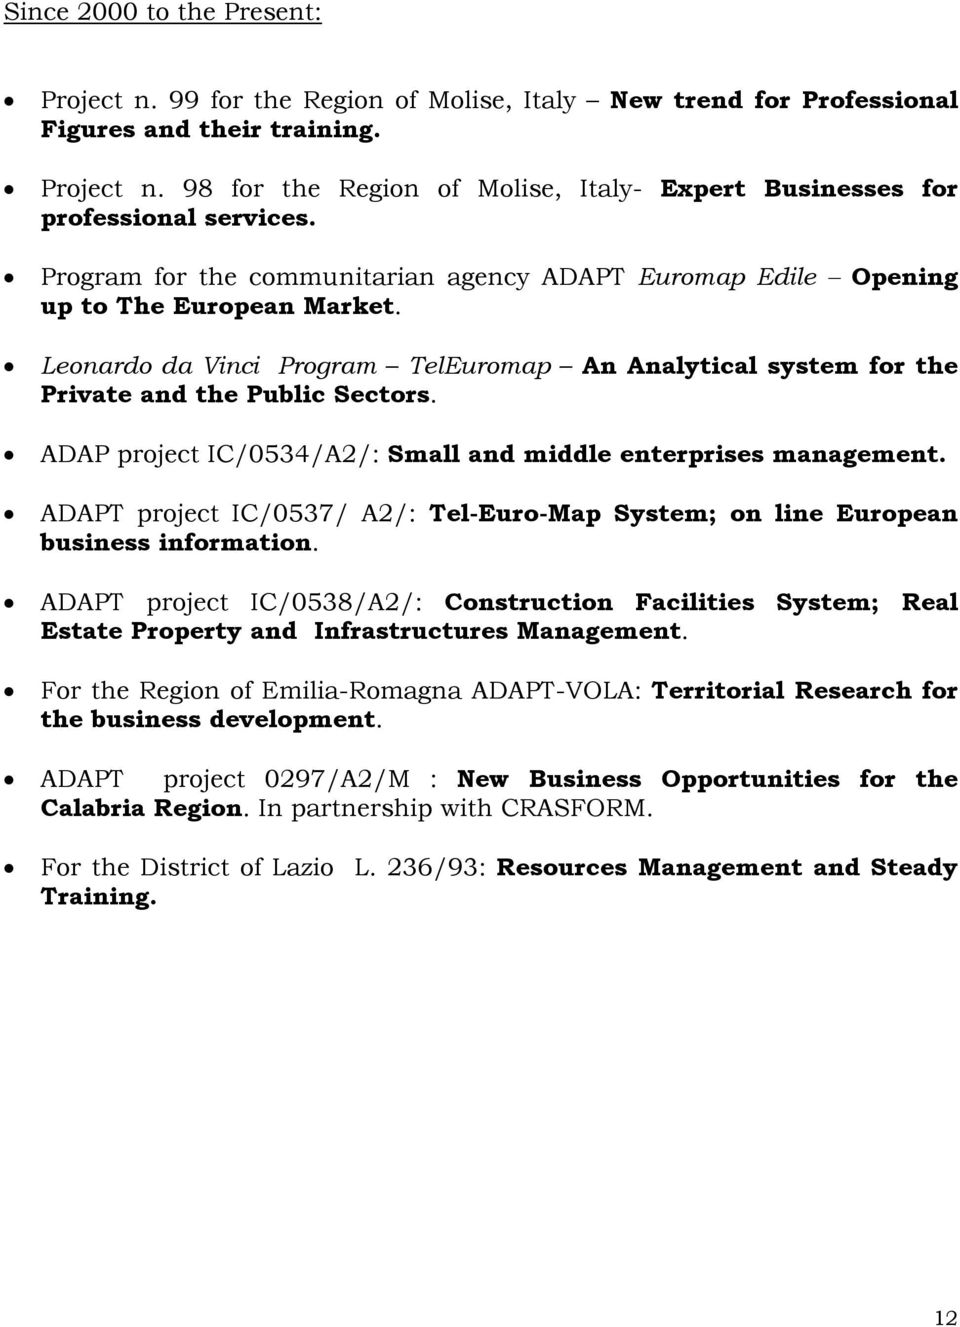 ADAP project IC/0534/A2/: Small and middle enterprises management. ADAPT project IC/0537/ A2/: Tel-Euro-Map System; on line European business information.